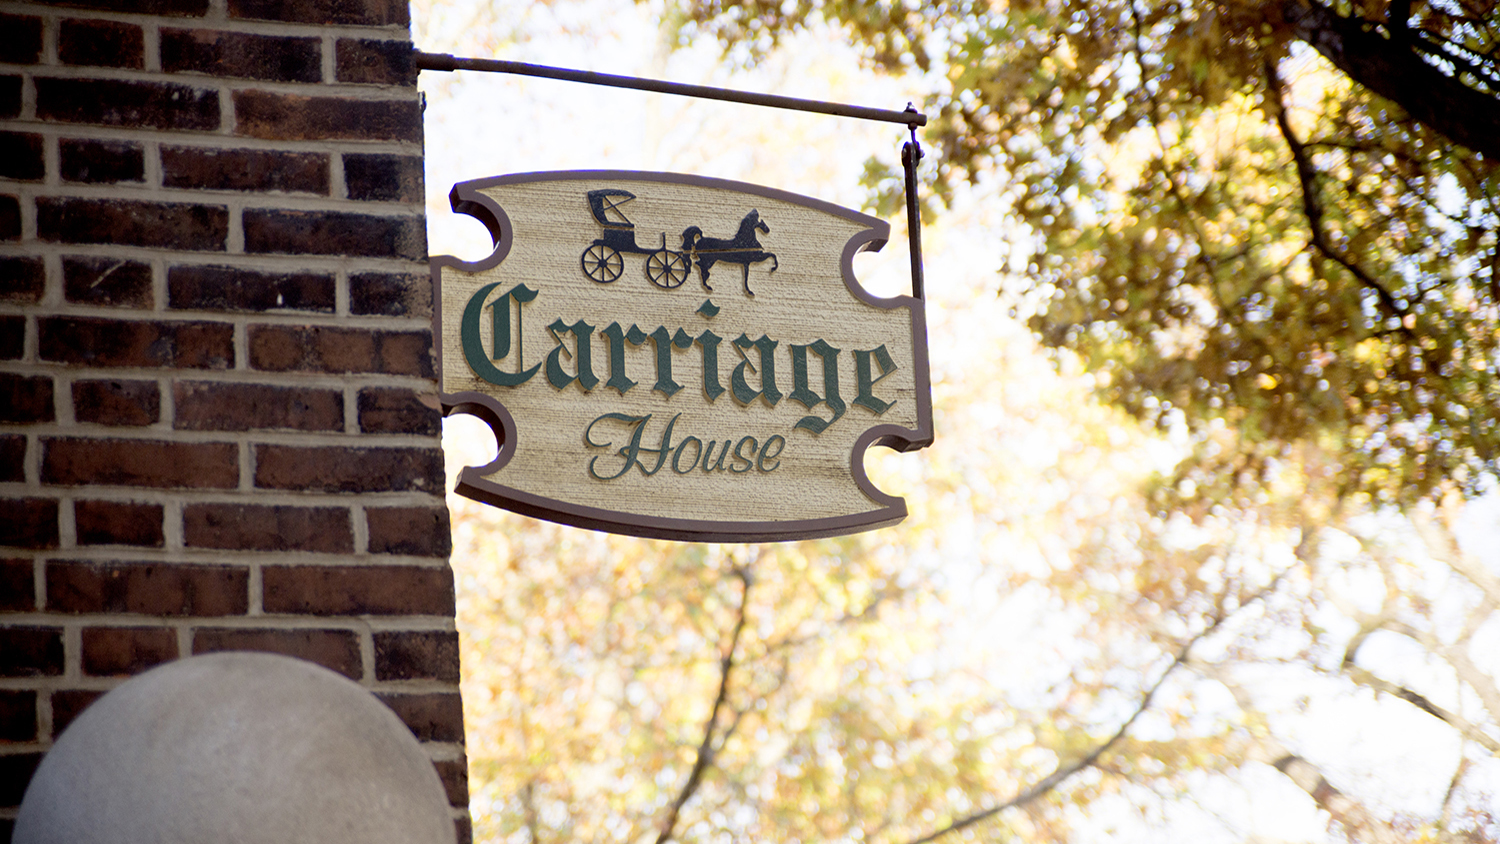 The Carriage House Facility